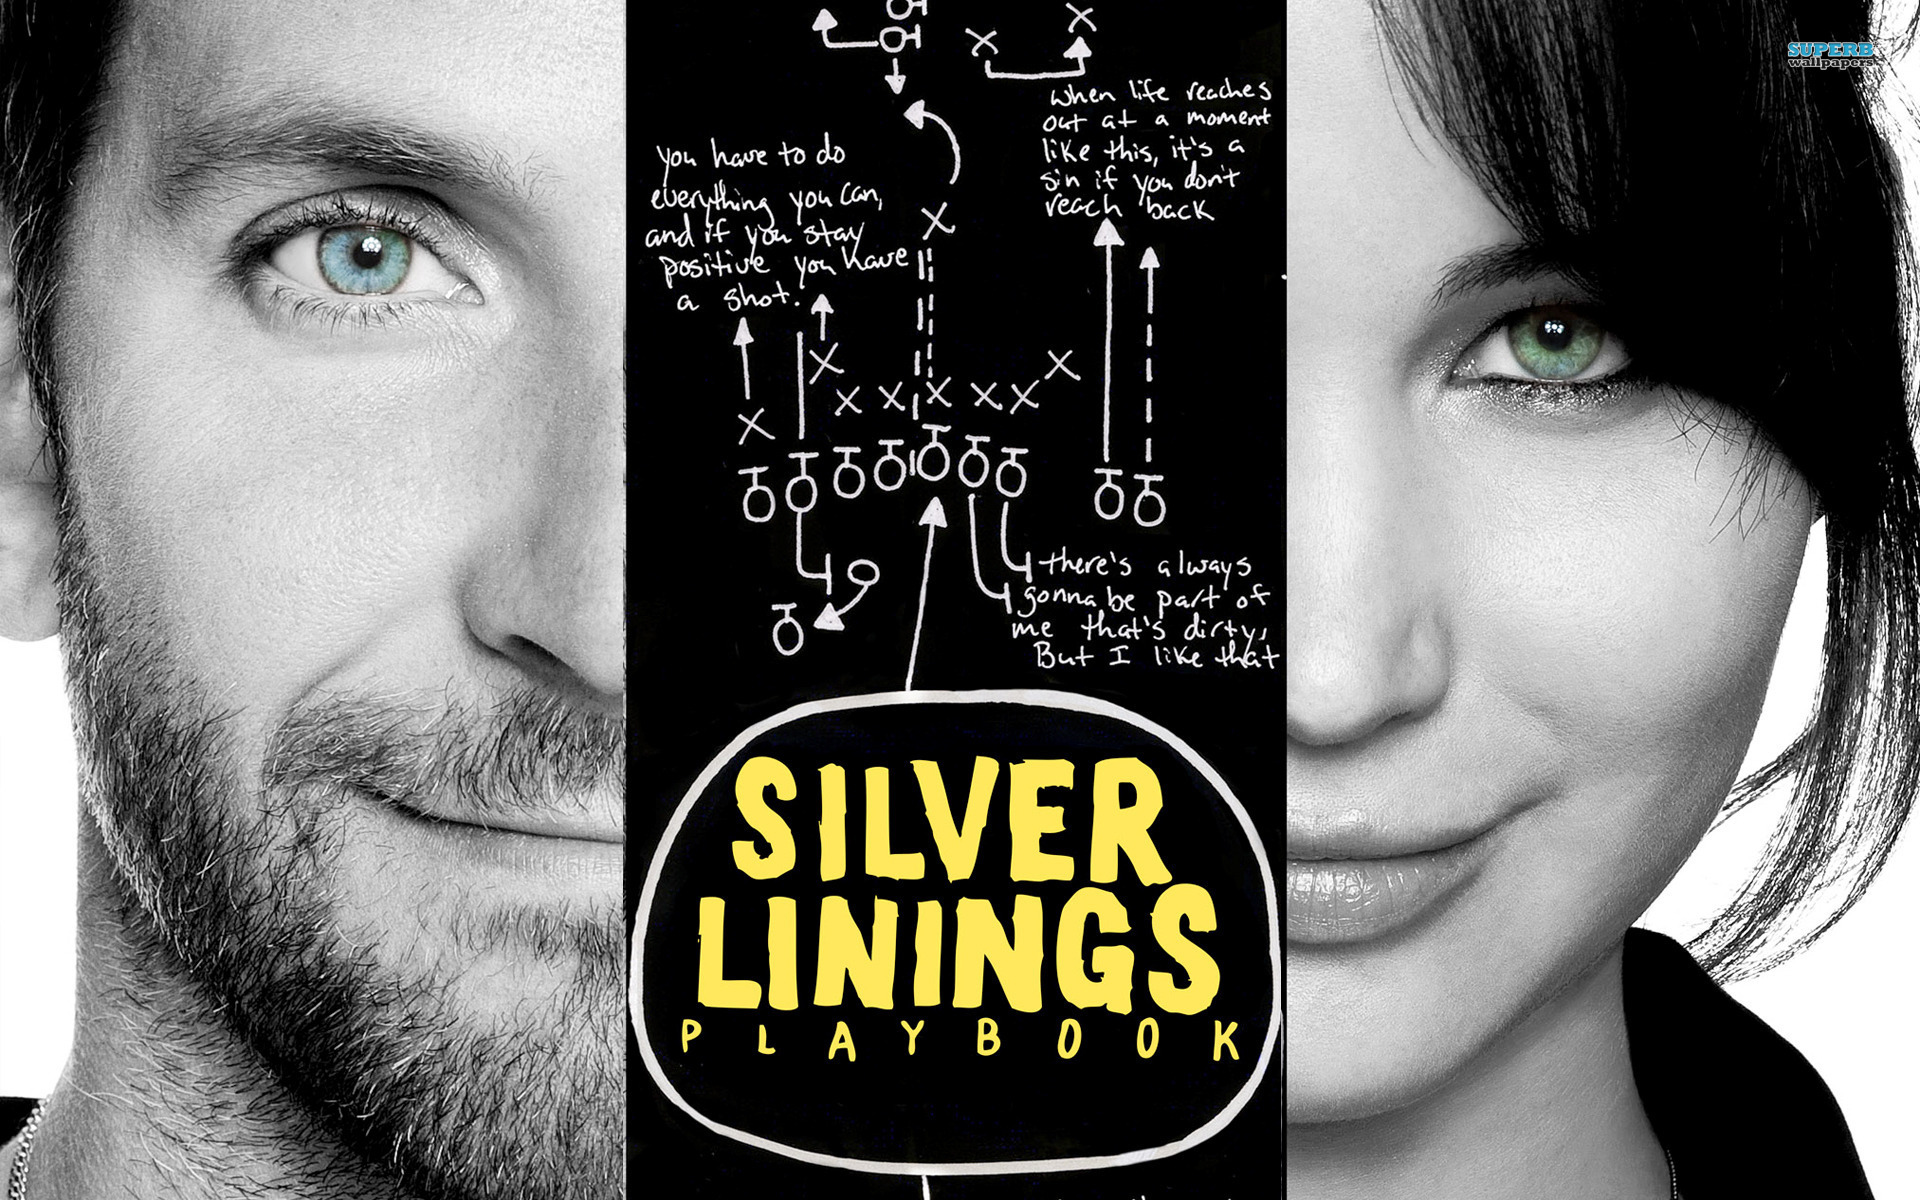 Cover art for the film Silver Linings Playbook